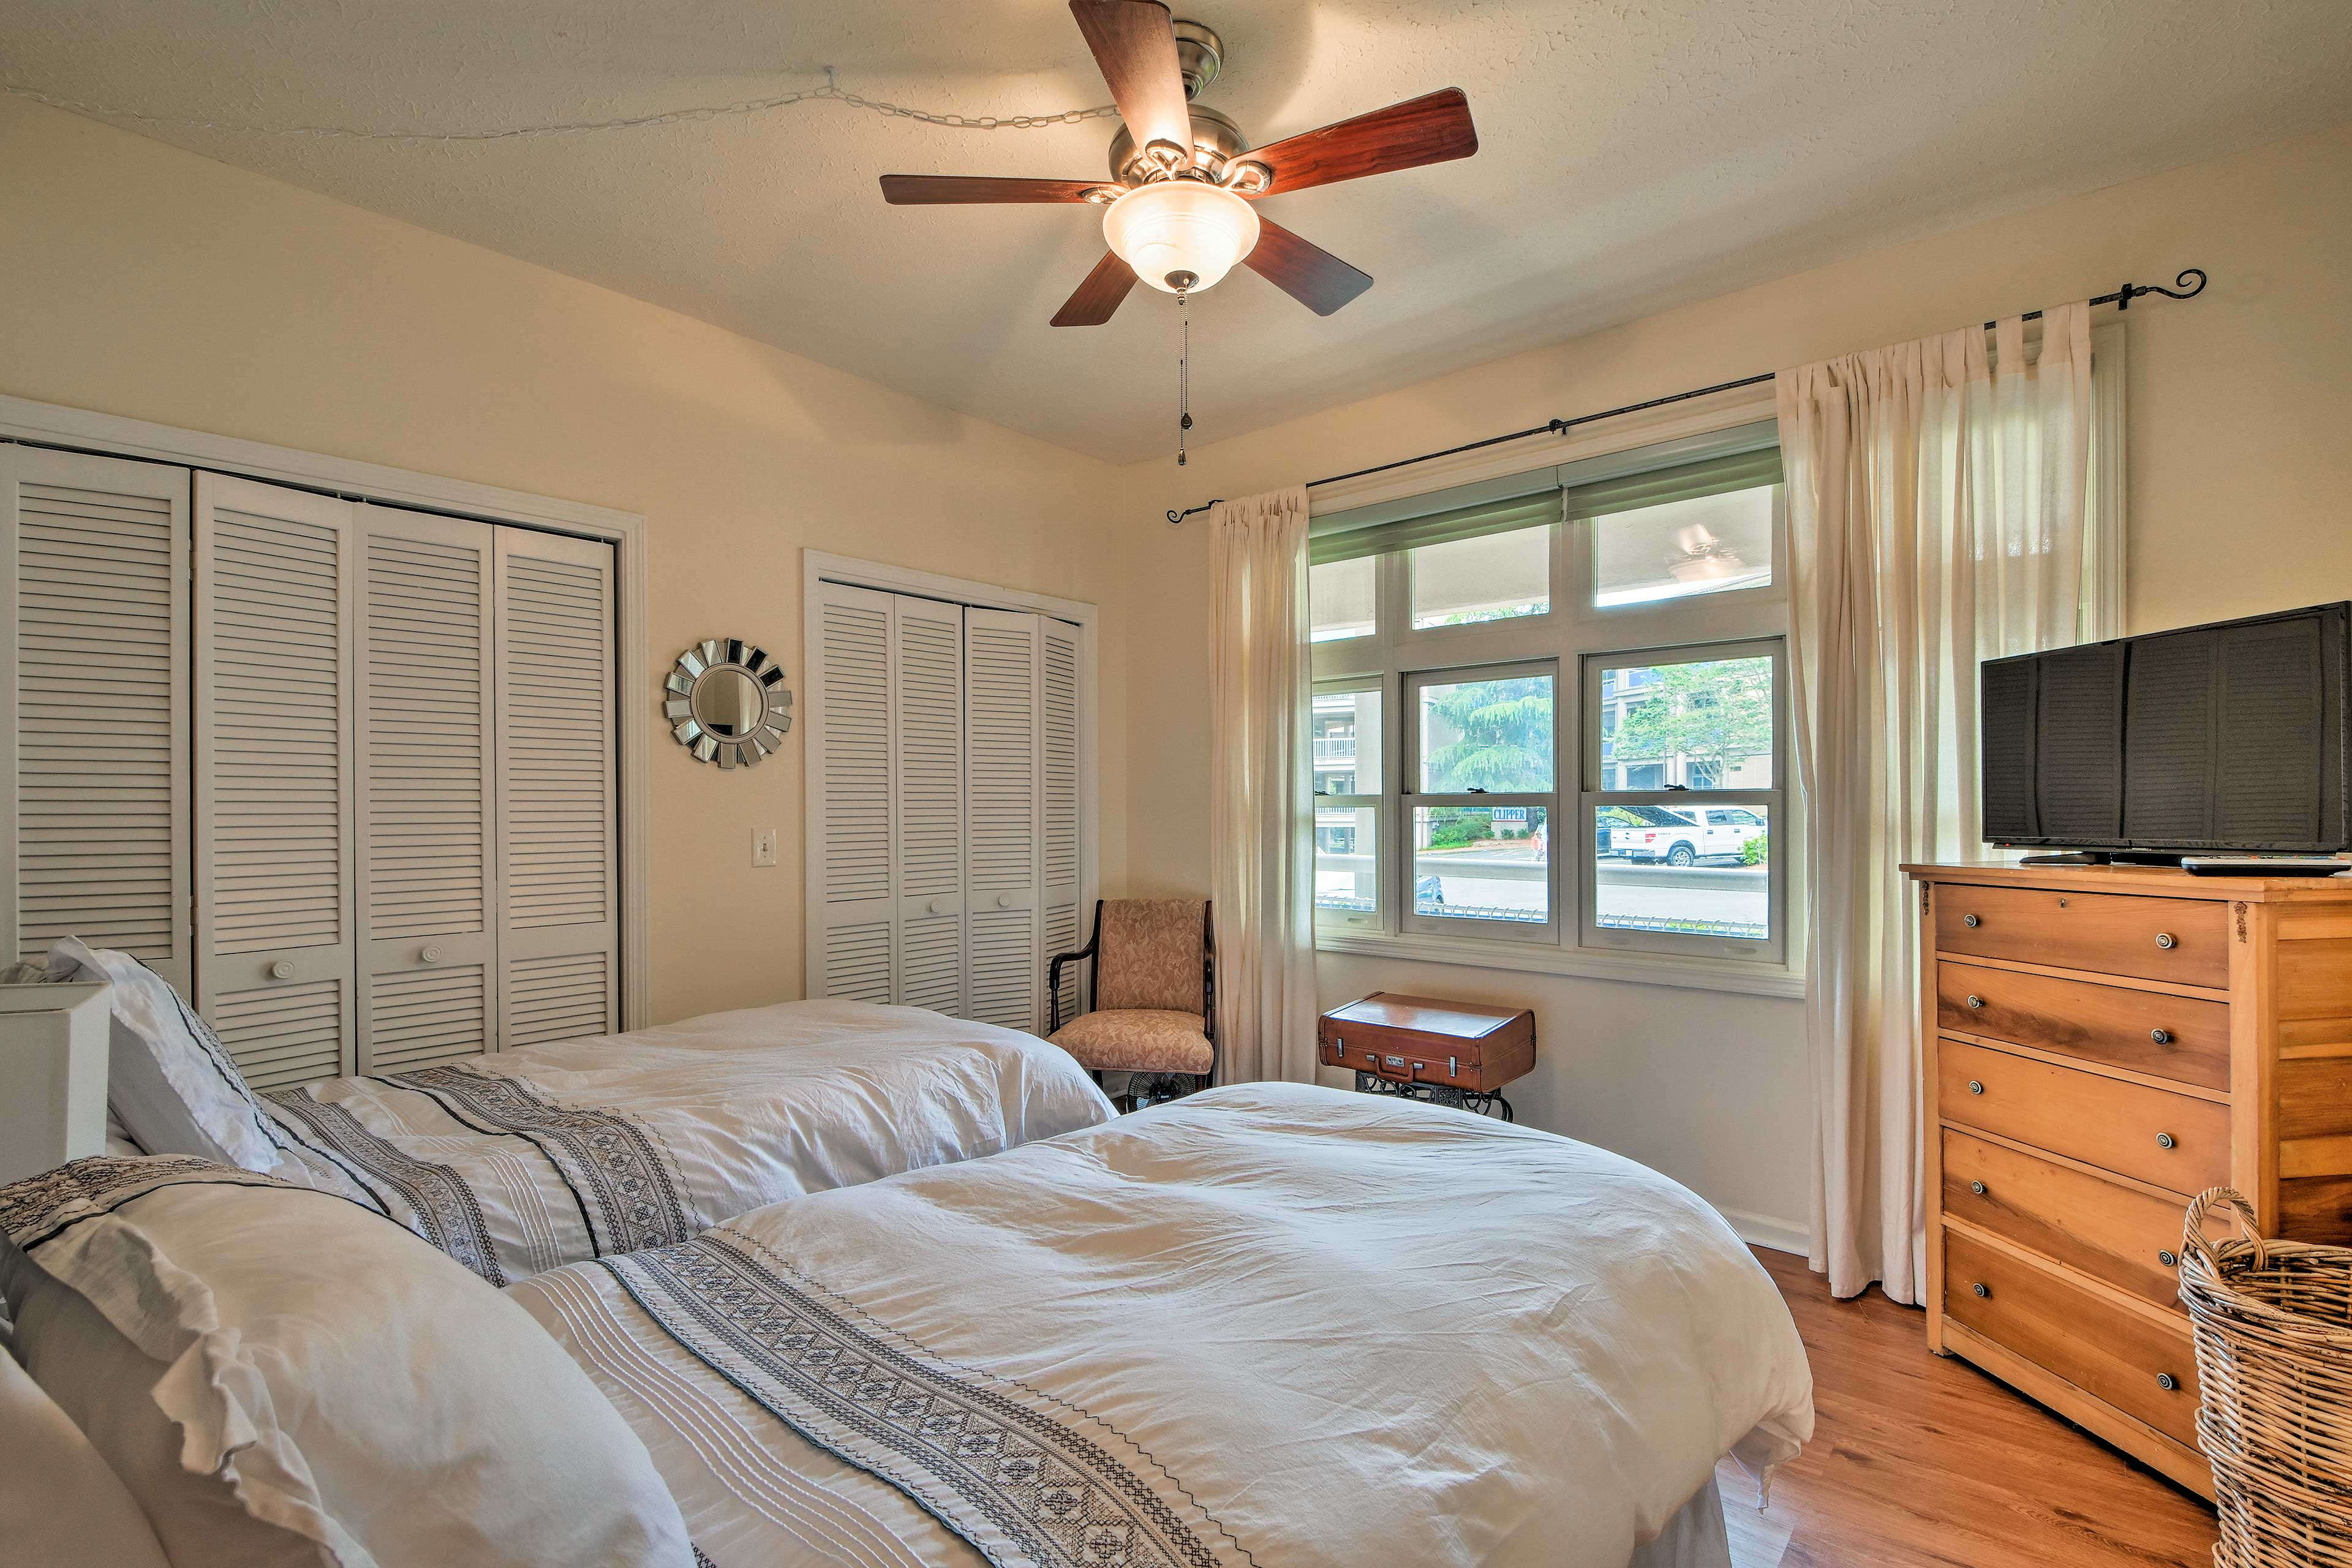 Step into bedroom 2 and find cozy twin beds waiting!